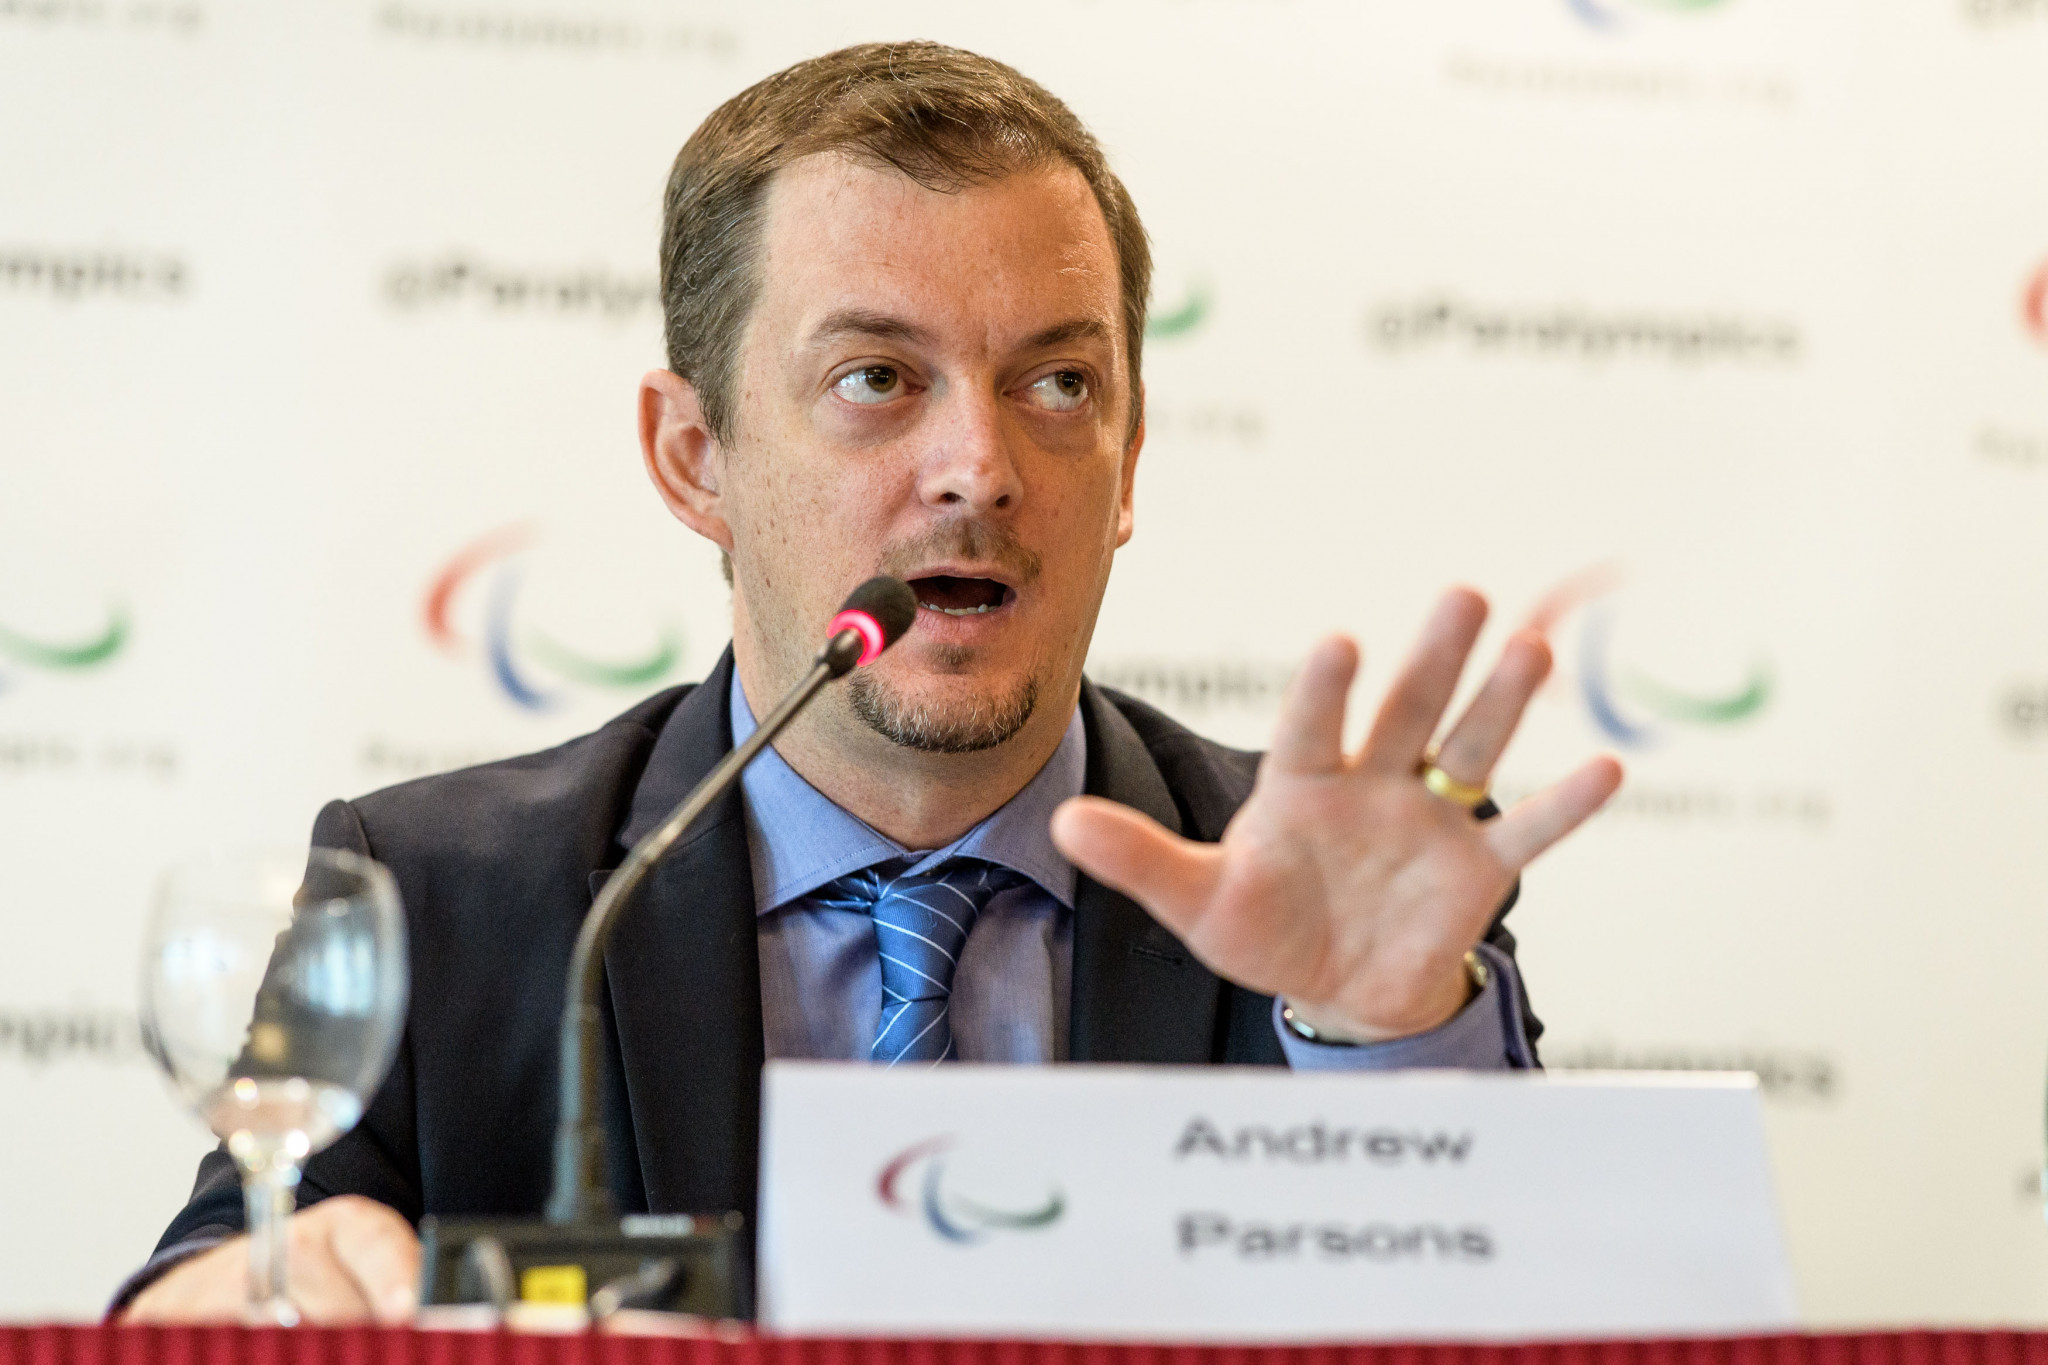 IPC President Andrew Parsons said they have greater confidence that the anti-doping system in Russia is no longer compromised or corrupted ©Getty Images